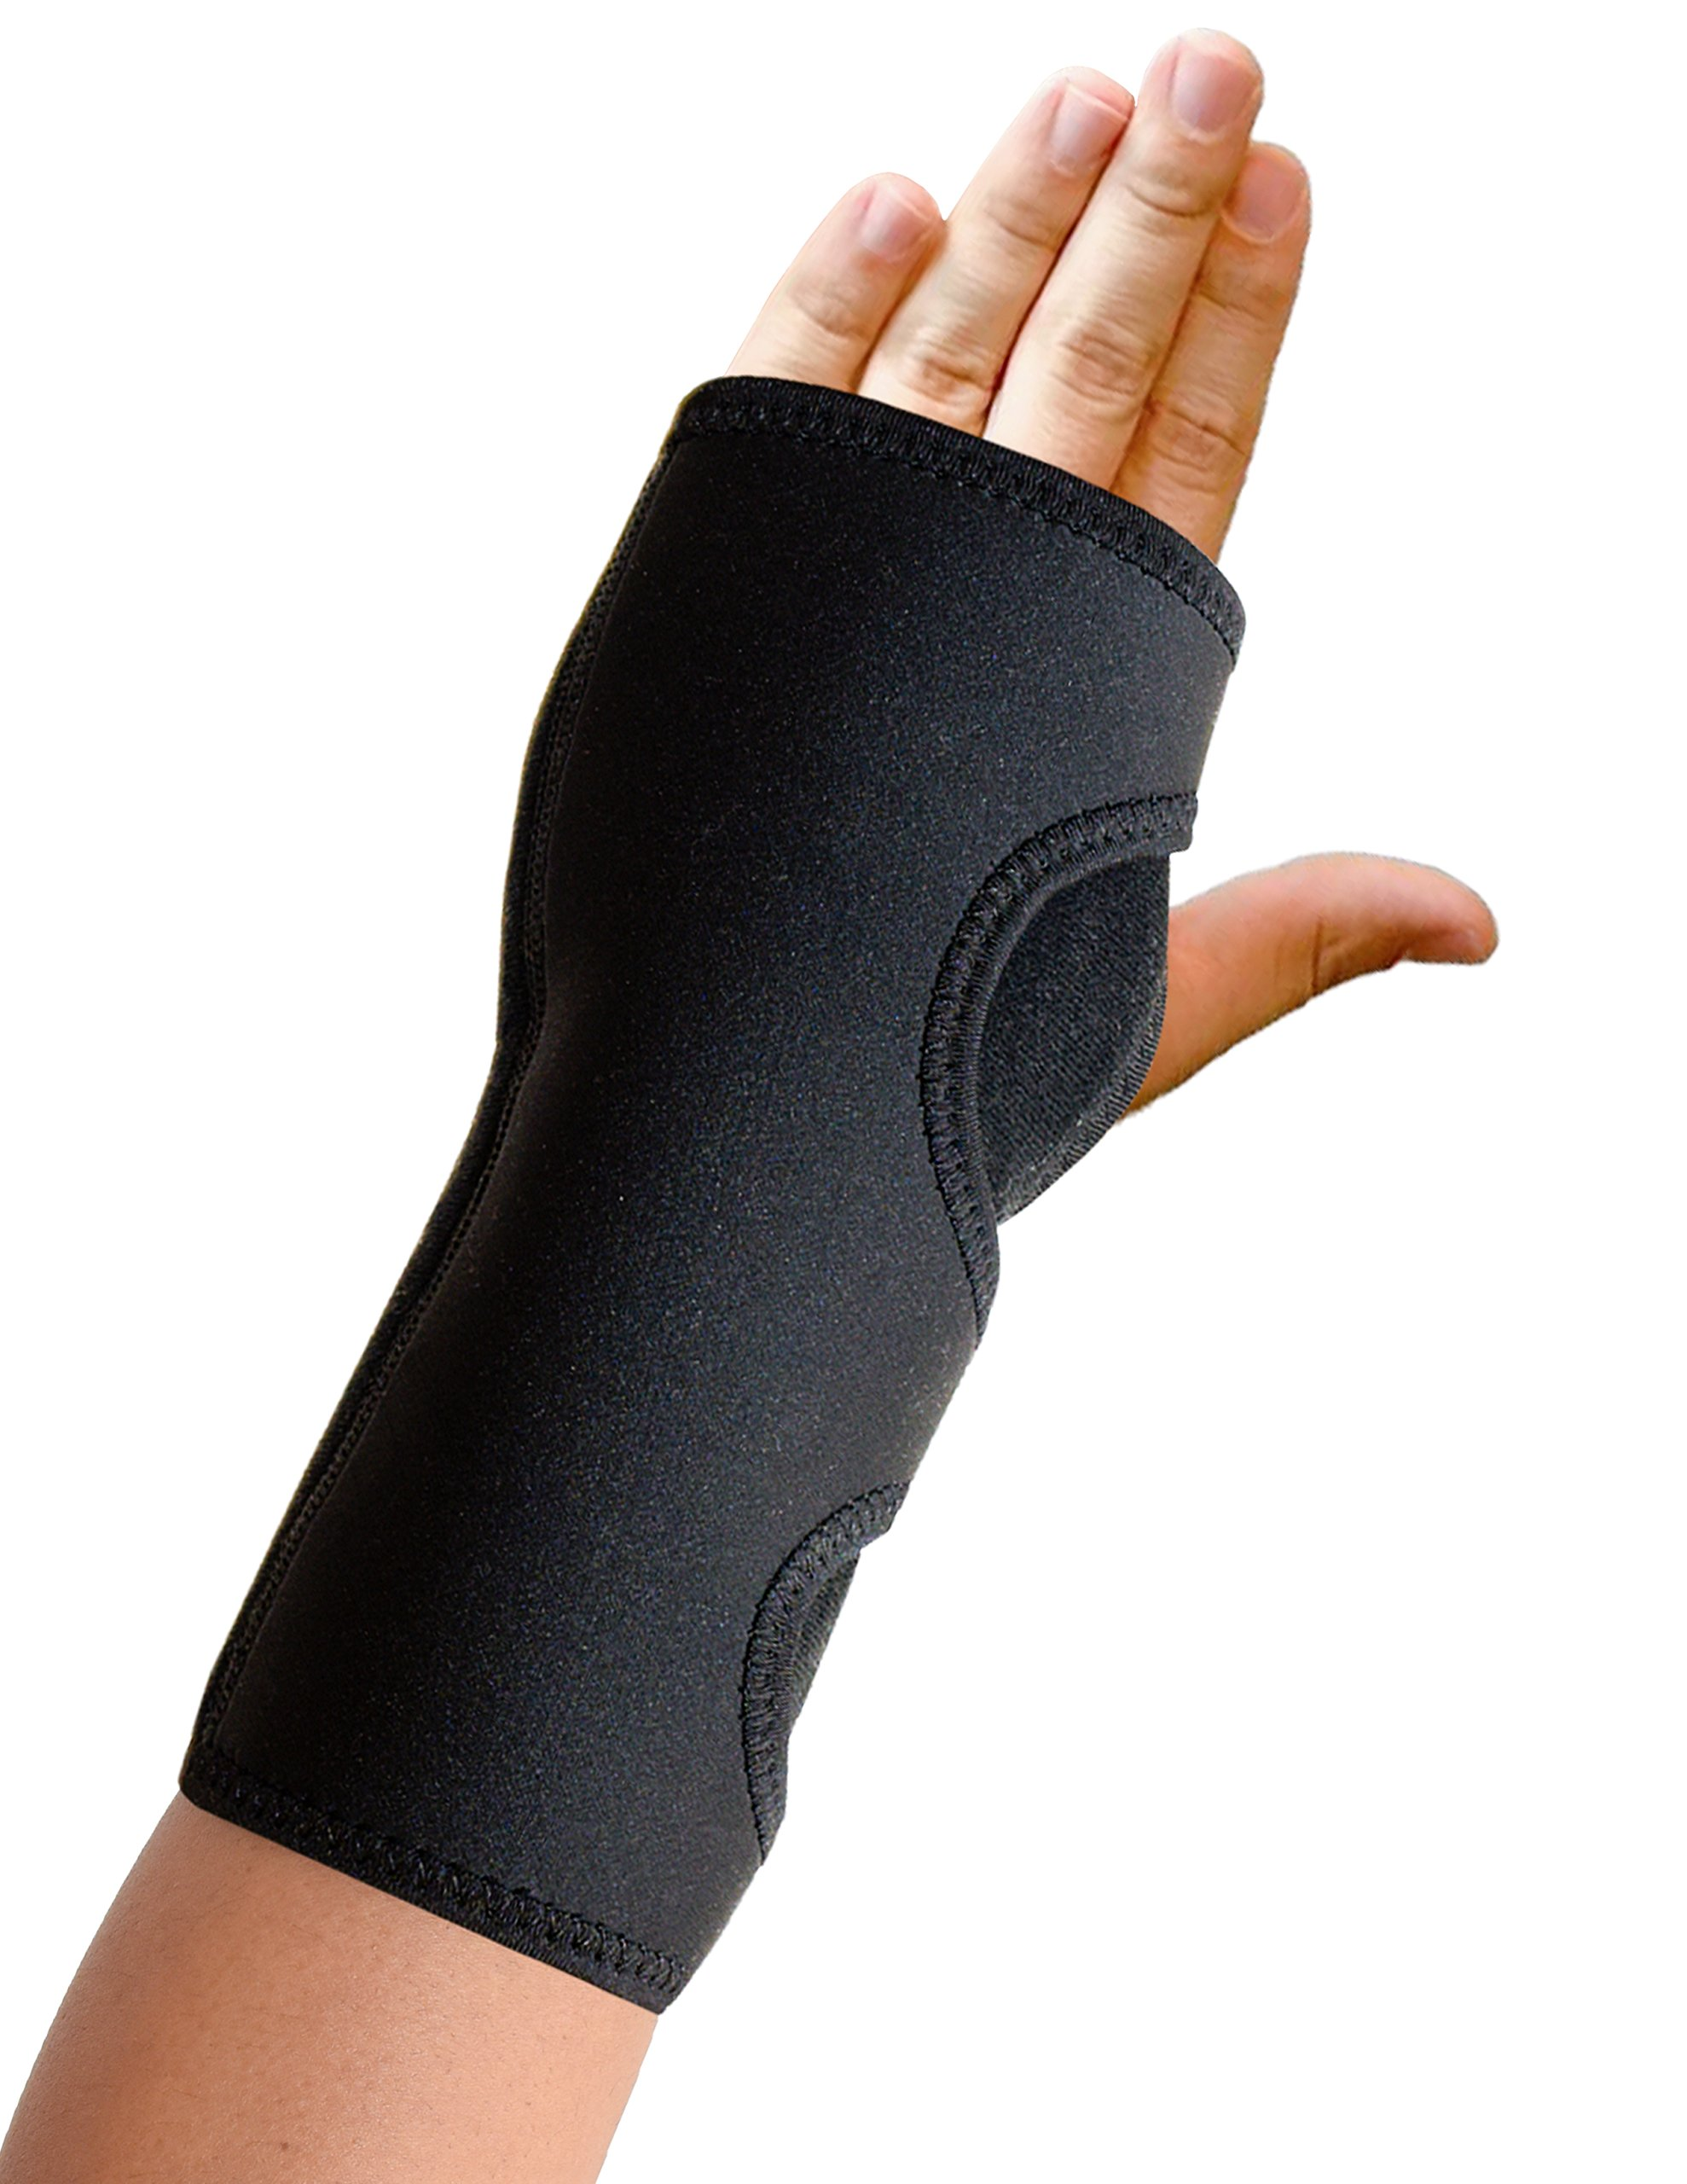 Night Wrist Sleep Support Brace Wrist Splint - Fits Both Hands - Cushioned to Help with Carpal Tunnel and Relieve and Treat Wrist Pain,Adjustable, Fitted